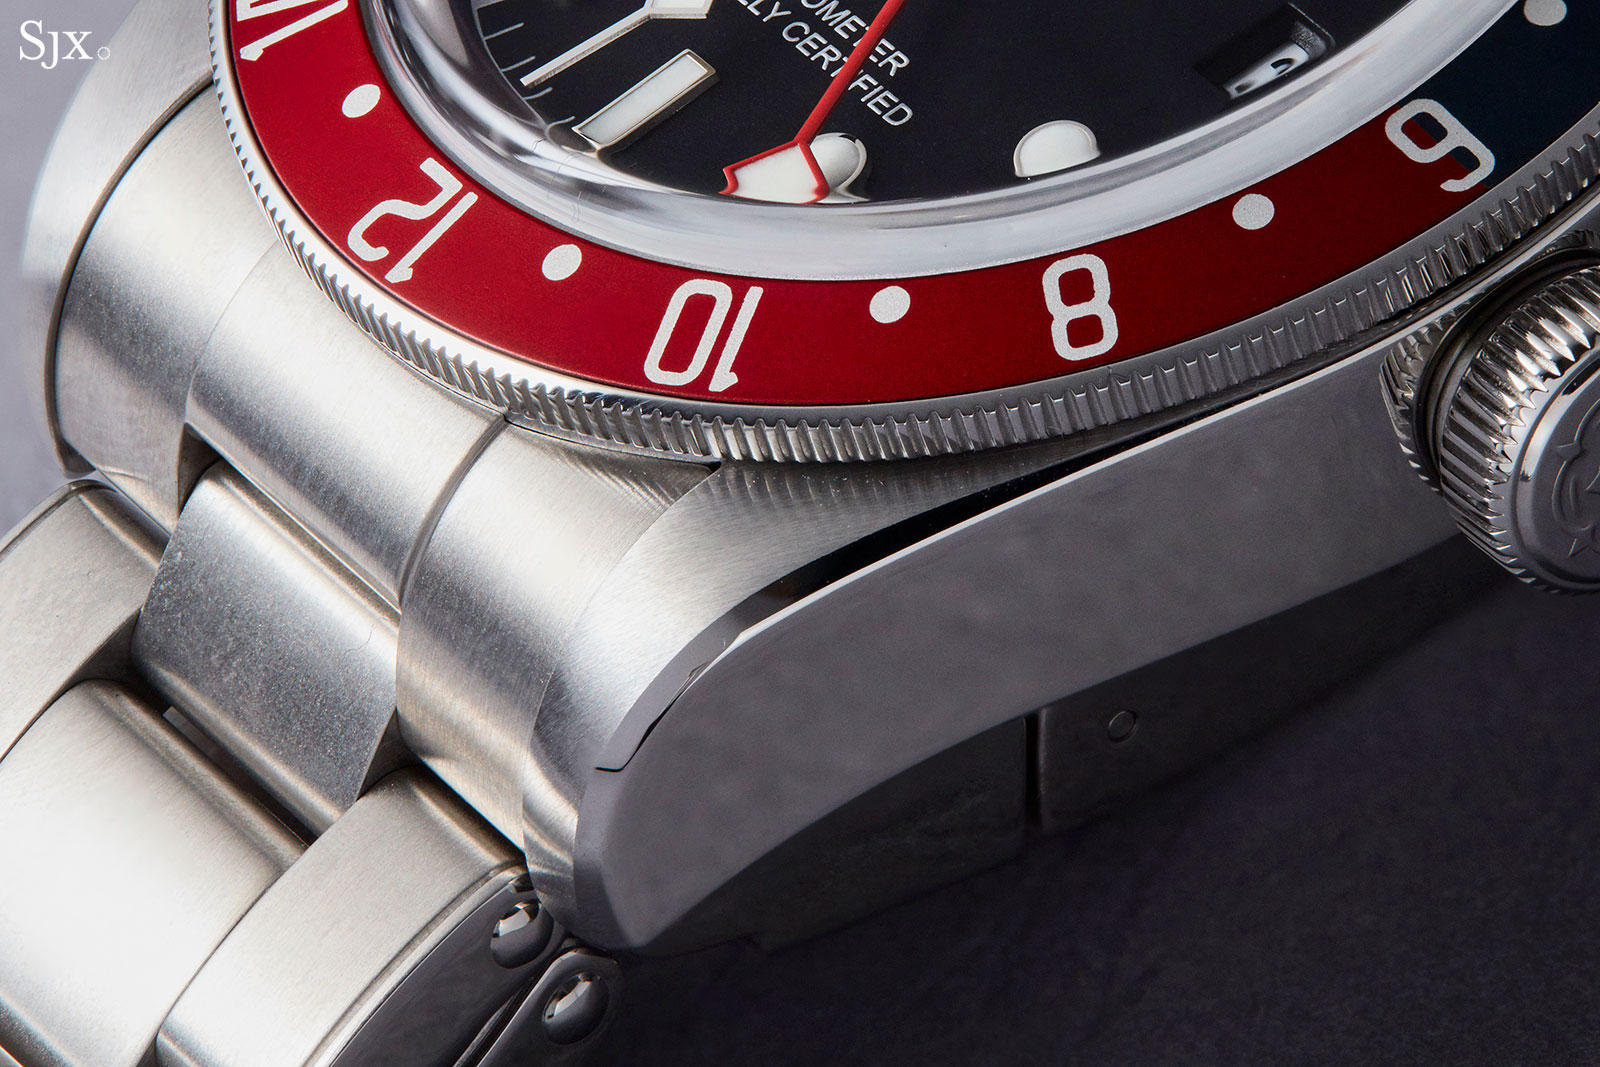 Up Close with the Tudor Black Bay GMT | SJX Watches